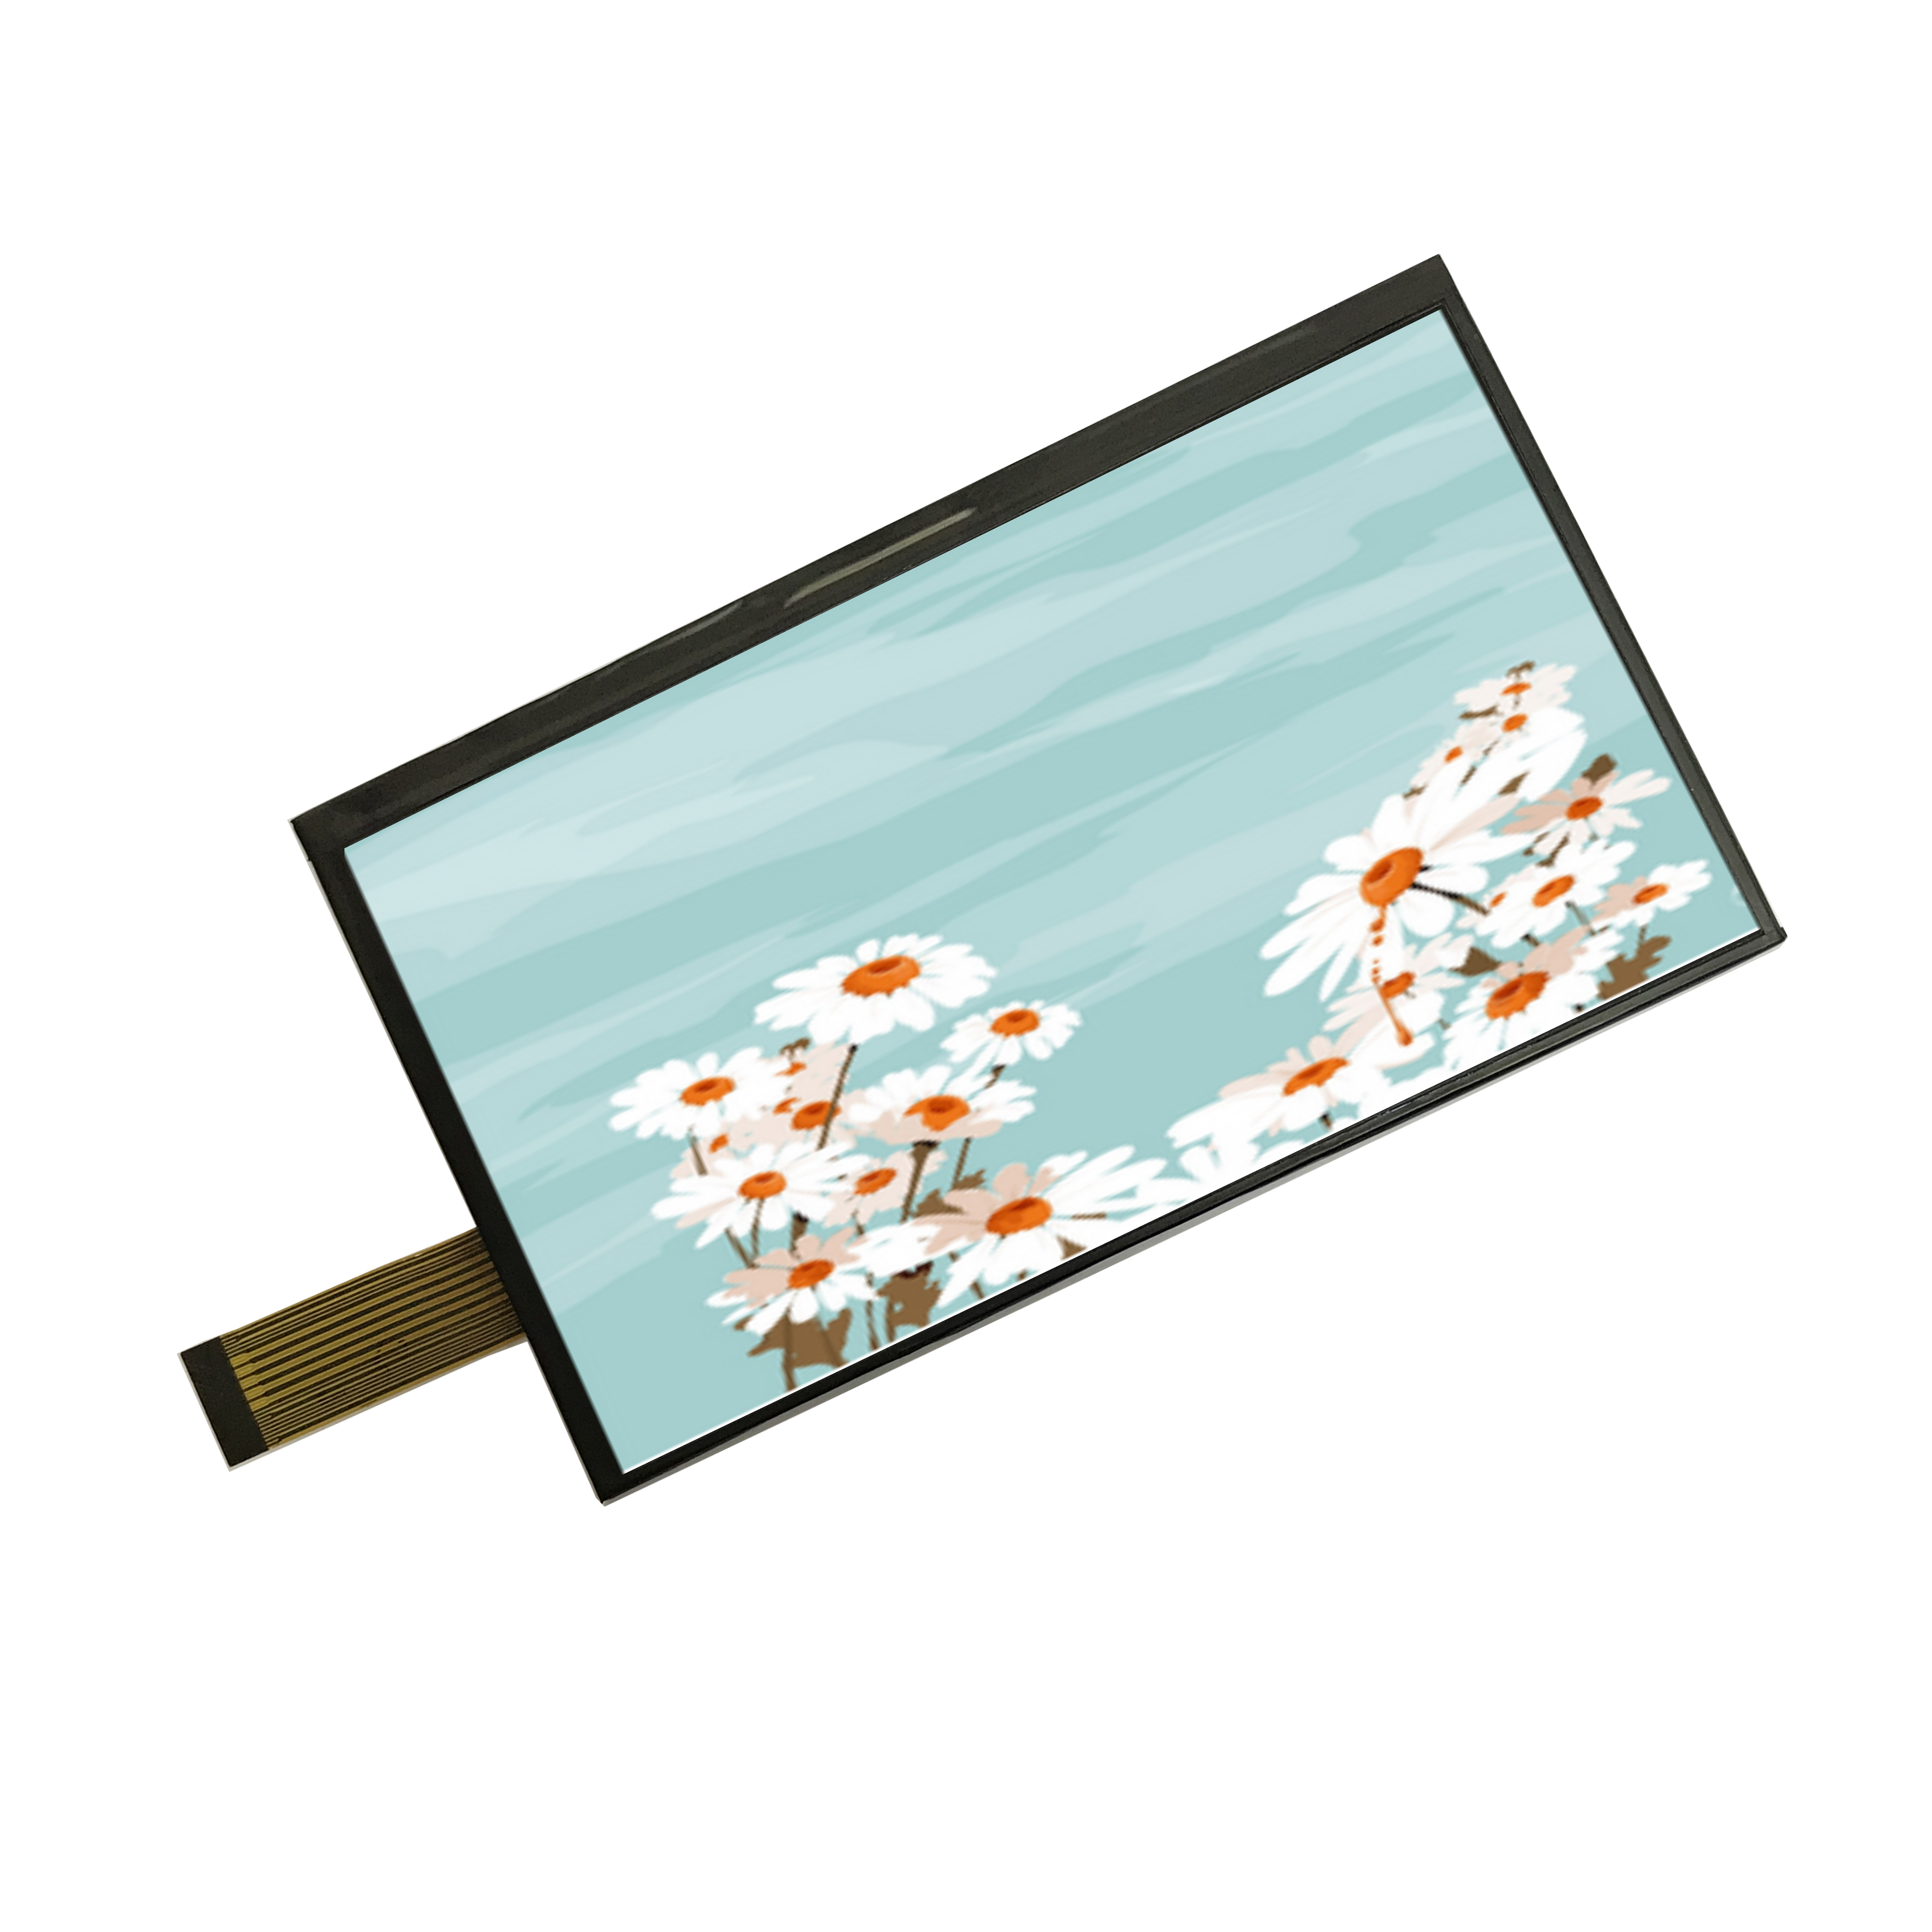 China 50 Inch Screen, China 50 Inch Screen Manufacturers and